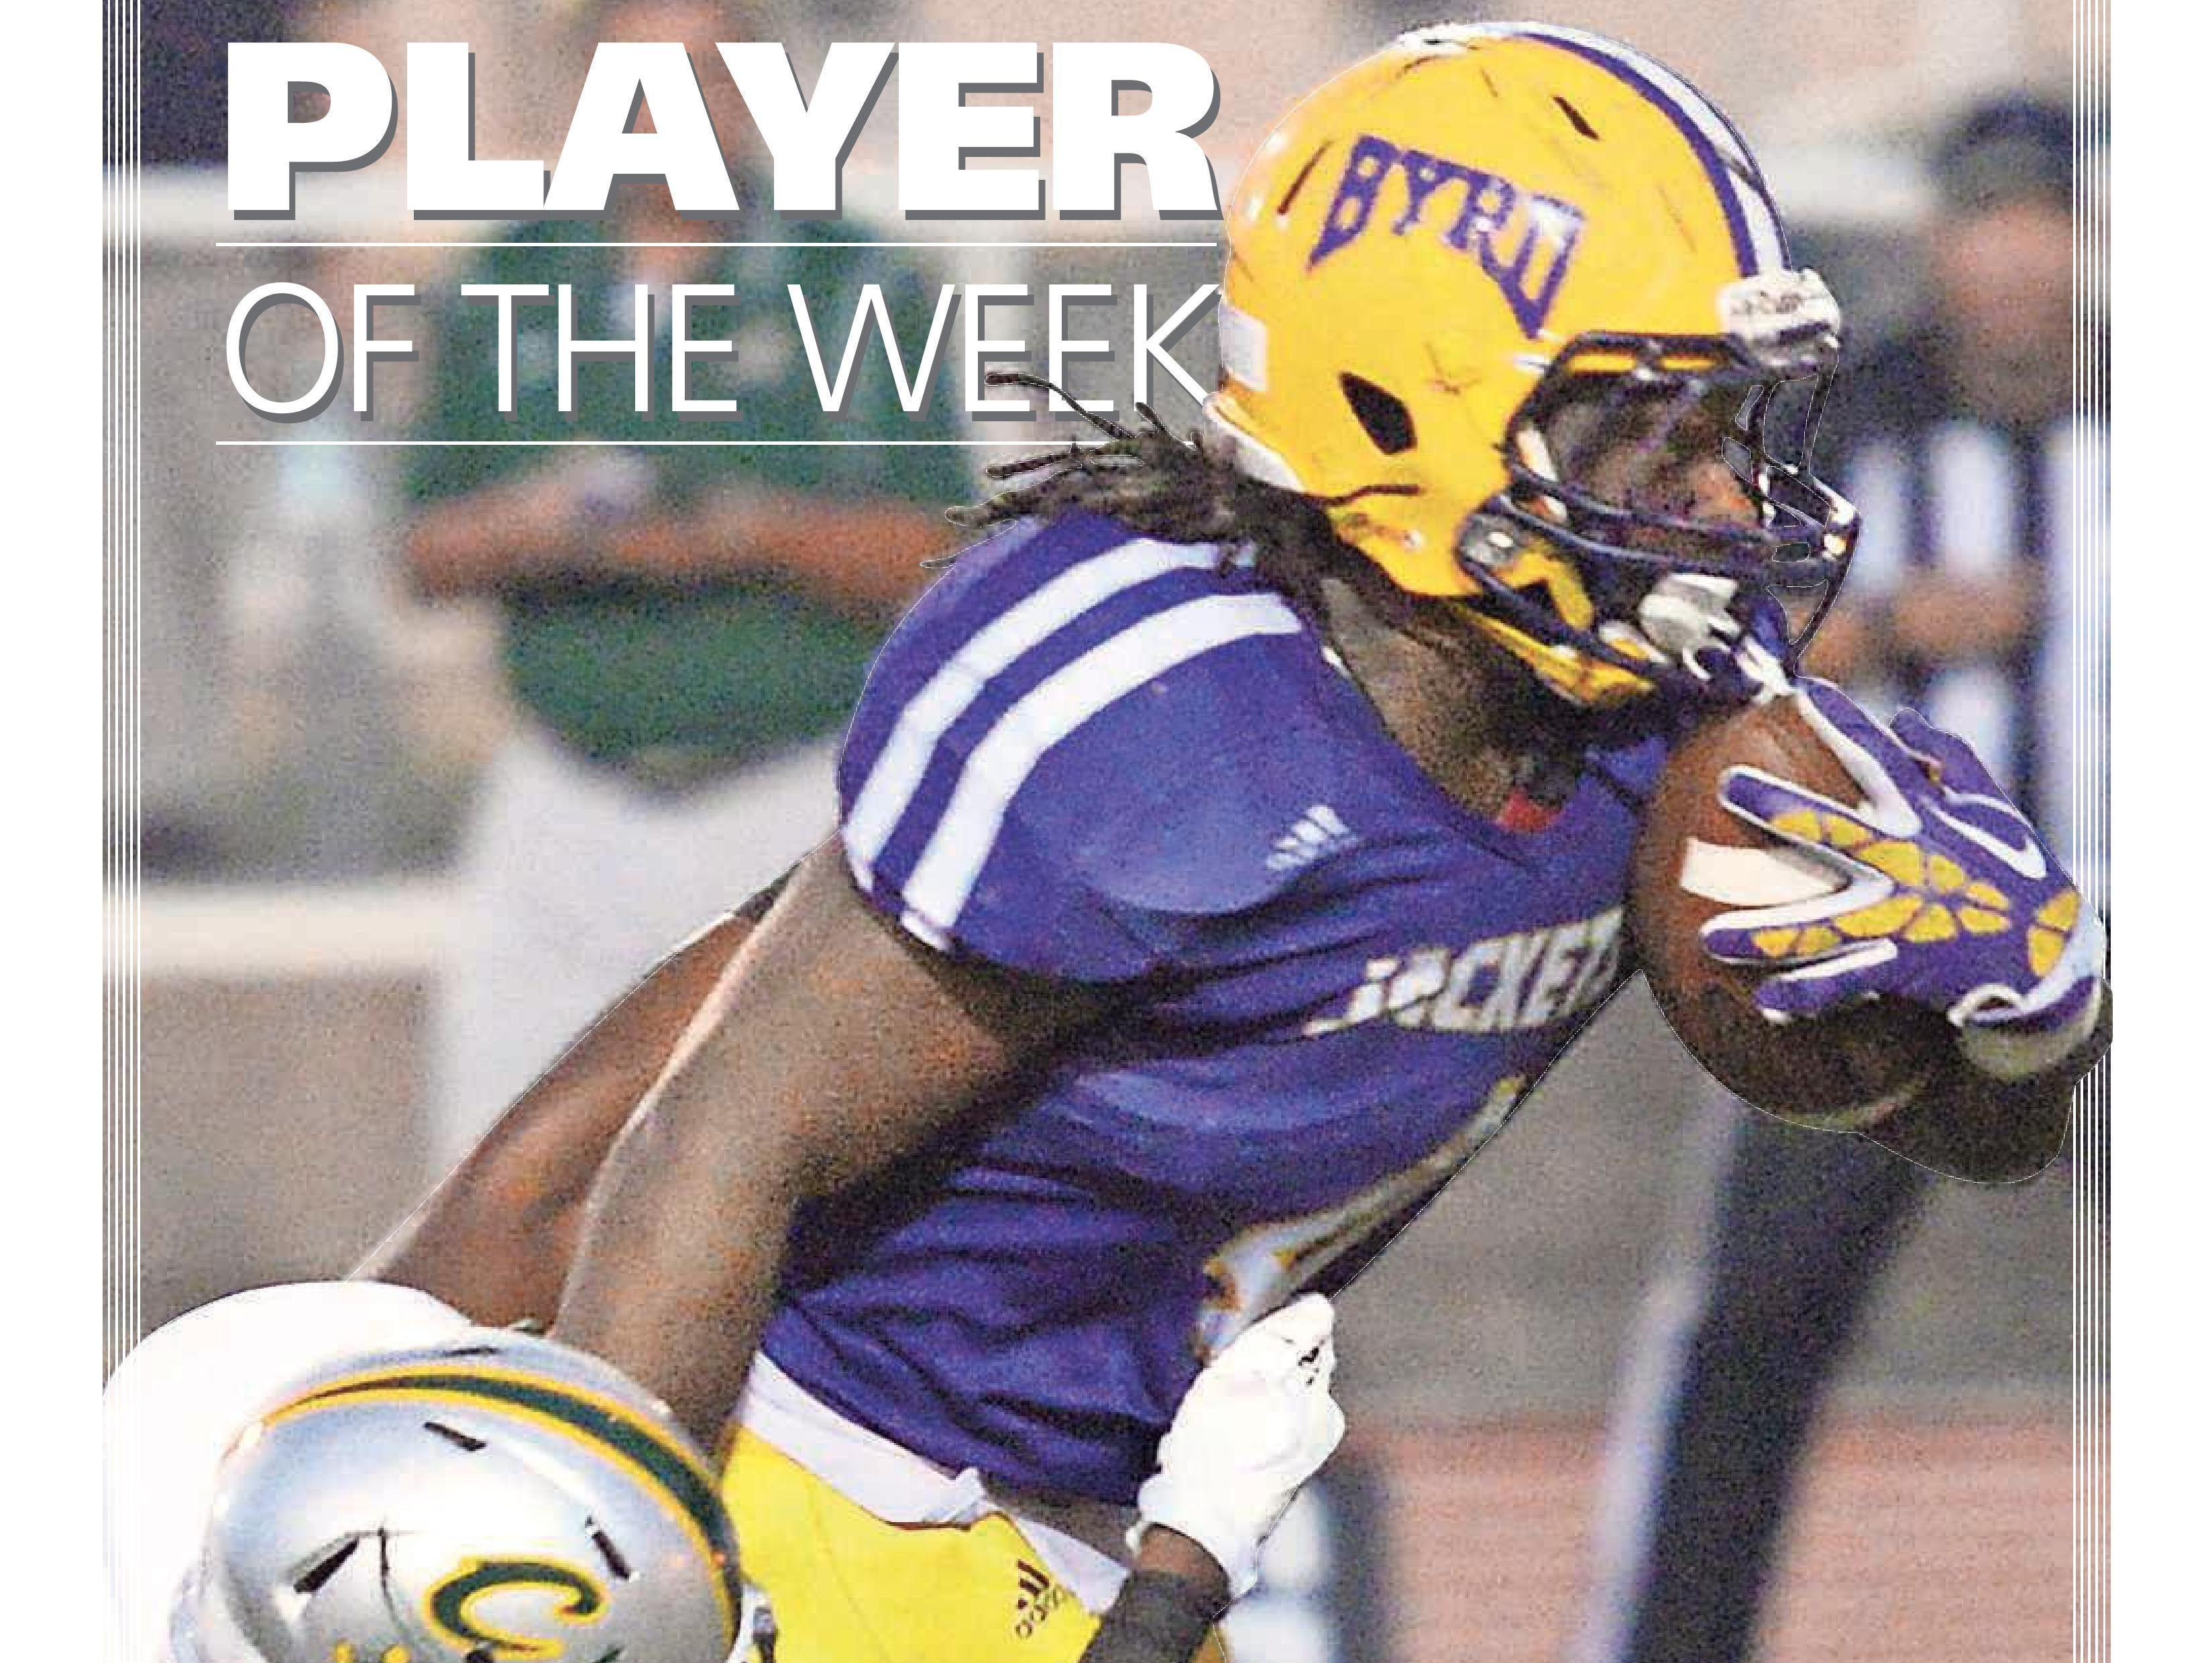 Byrd running back Trayveon Allen was voted the Week 3 Player of the Week.